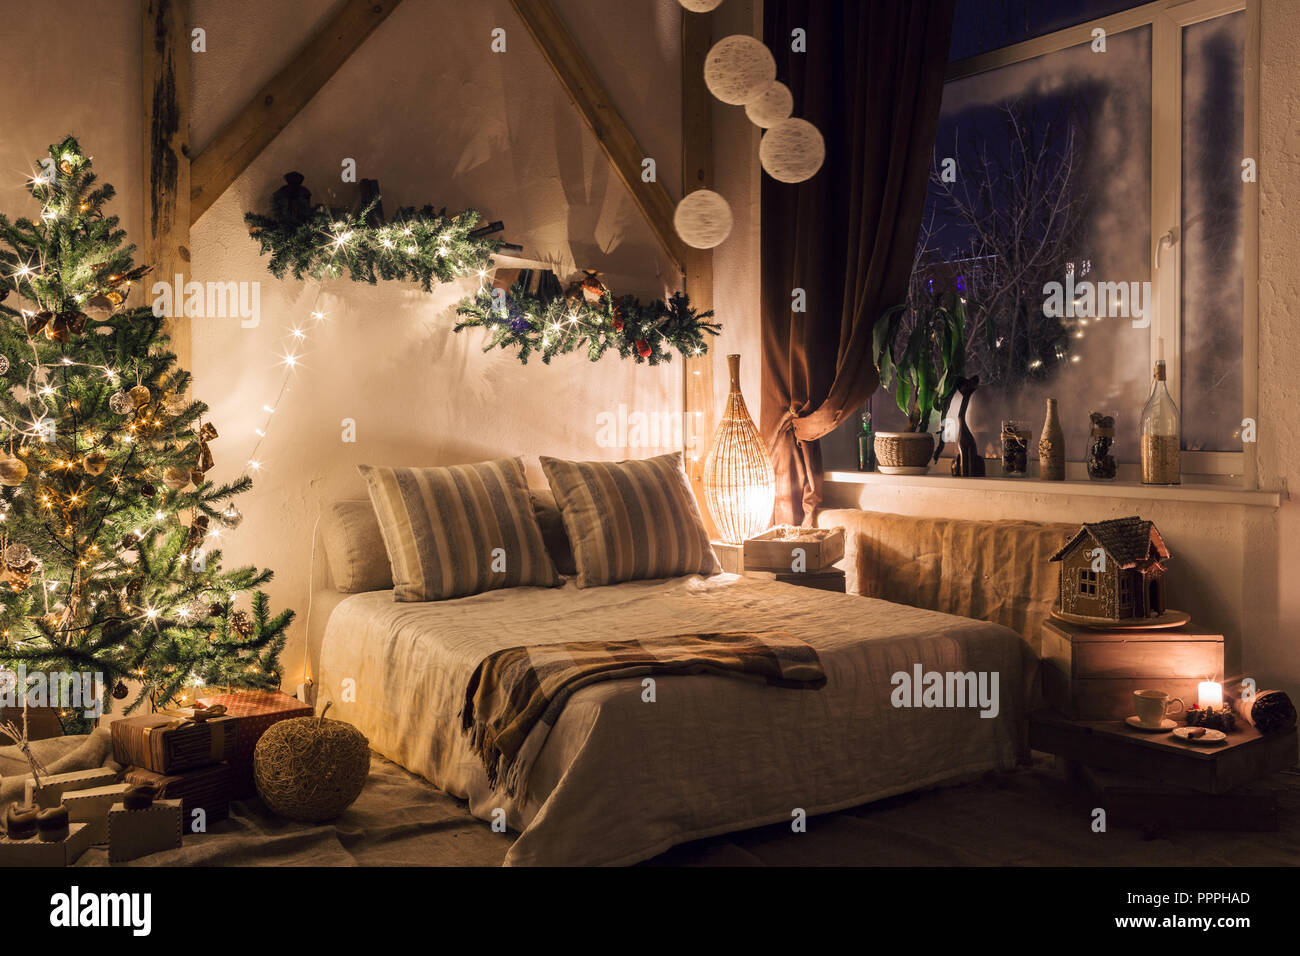 warm and cozy evening in living room. Sofa bed In christmas Interior. concept the new year and holidays. Stock Photo